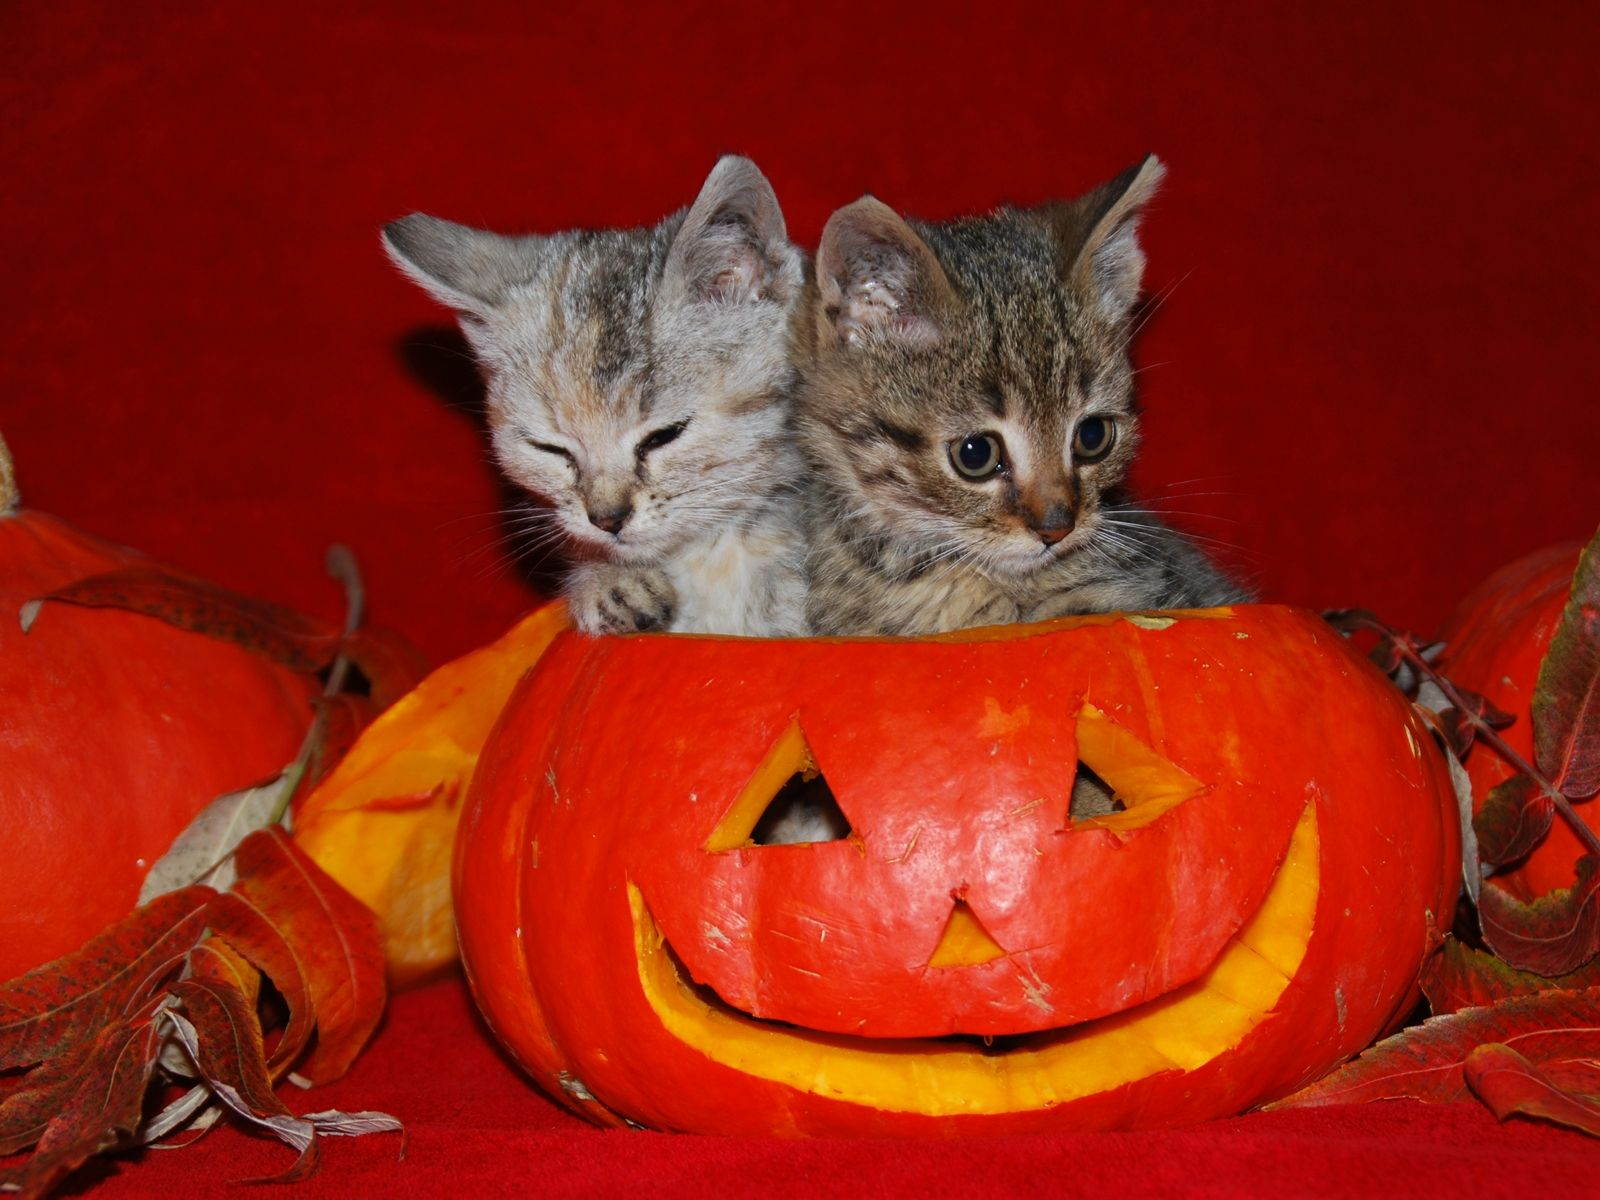 1600x1200 45+ Cute Puppy Halloween Wallpapers - Download at WallpaperBro